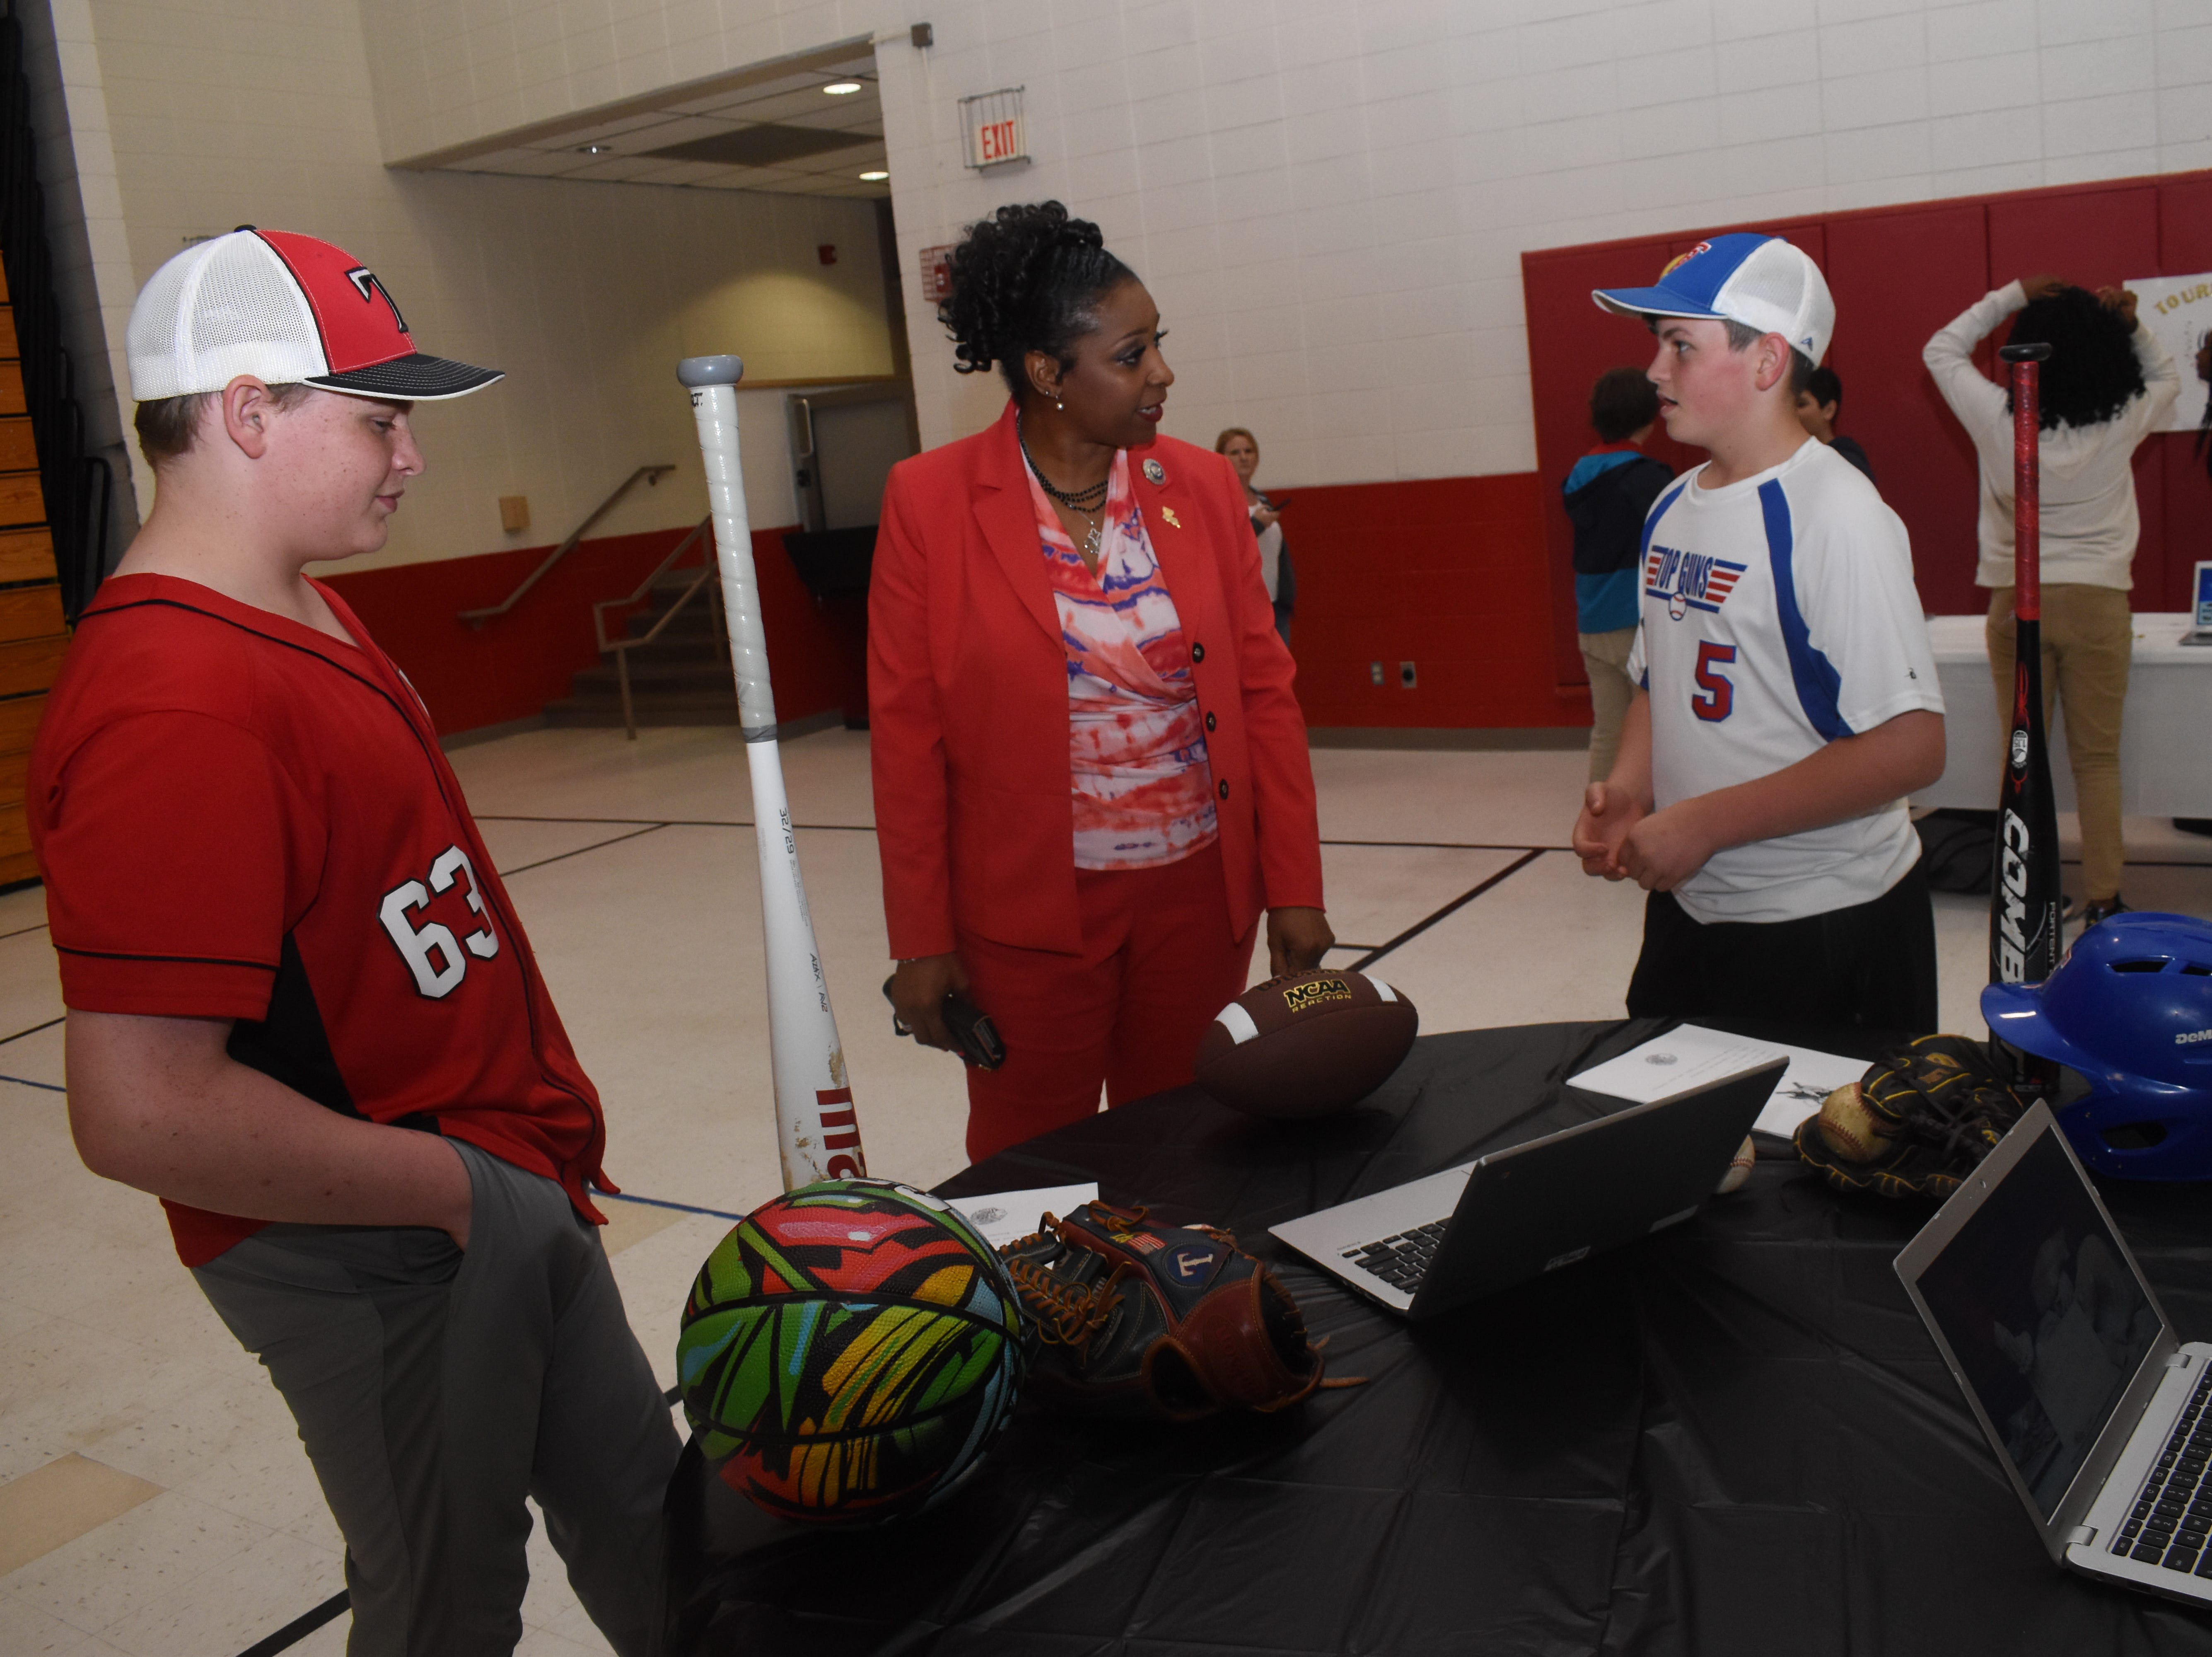 """Tioga Junior High School seventh-graders Brayden Timmer (left) and Blade Barrett (far right) talk with Vanessa Baptiste-McNeal, a legislative aide for La. State Sen. Jay Luneau, about their """"Genius Hour"""" project. The students told her that their project involved hosting a sports camp for people with special needs so they can participate in sports they otherwise would not be able to participate in. Brayden and Blade said they plan to host the camp in the summer of 2020 at the school. Tioga Junior High School seventh-graders presented projects to community members Thursday, May 9, 2019 in a class called Genius Hour. Students in the class were recommended by teachers. Janice Williams, a teacher at TJHS, said Genius Hour allows students to explore their own passions and encourages creativity in the classroom. The class allows students to choose what they would like to learn."""